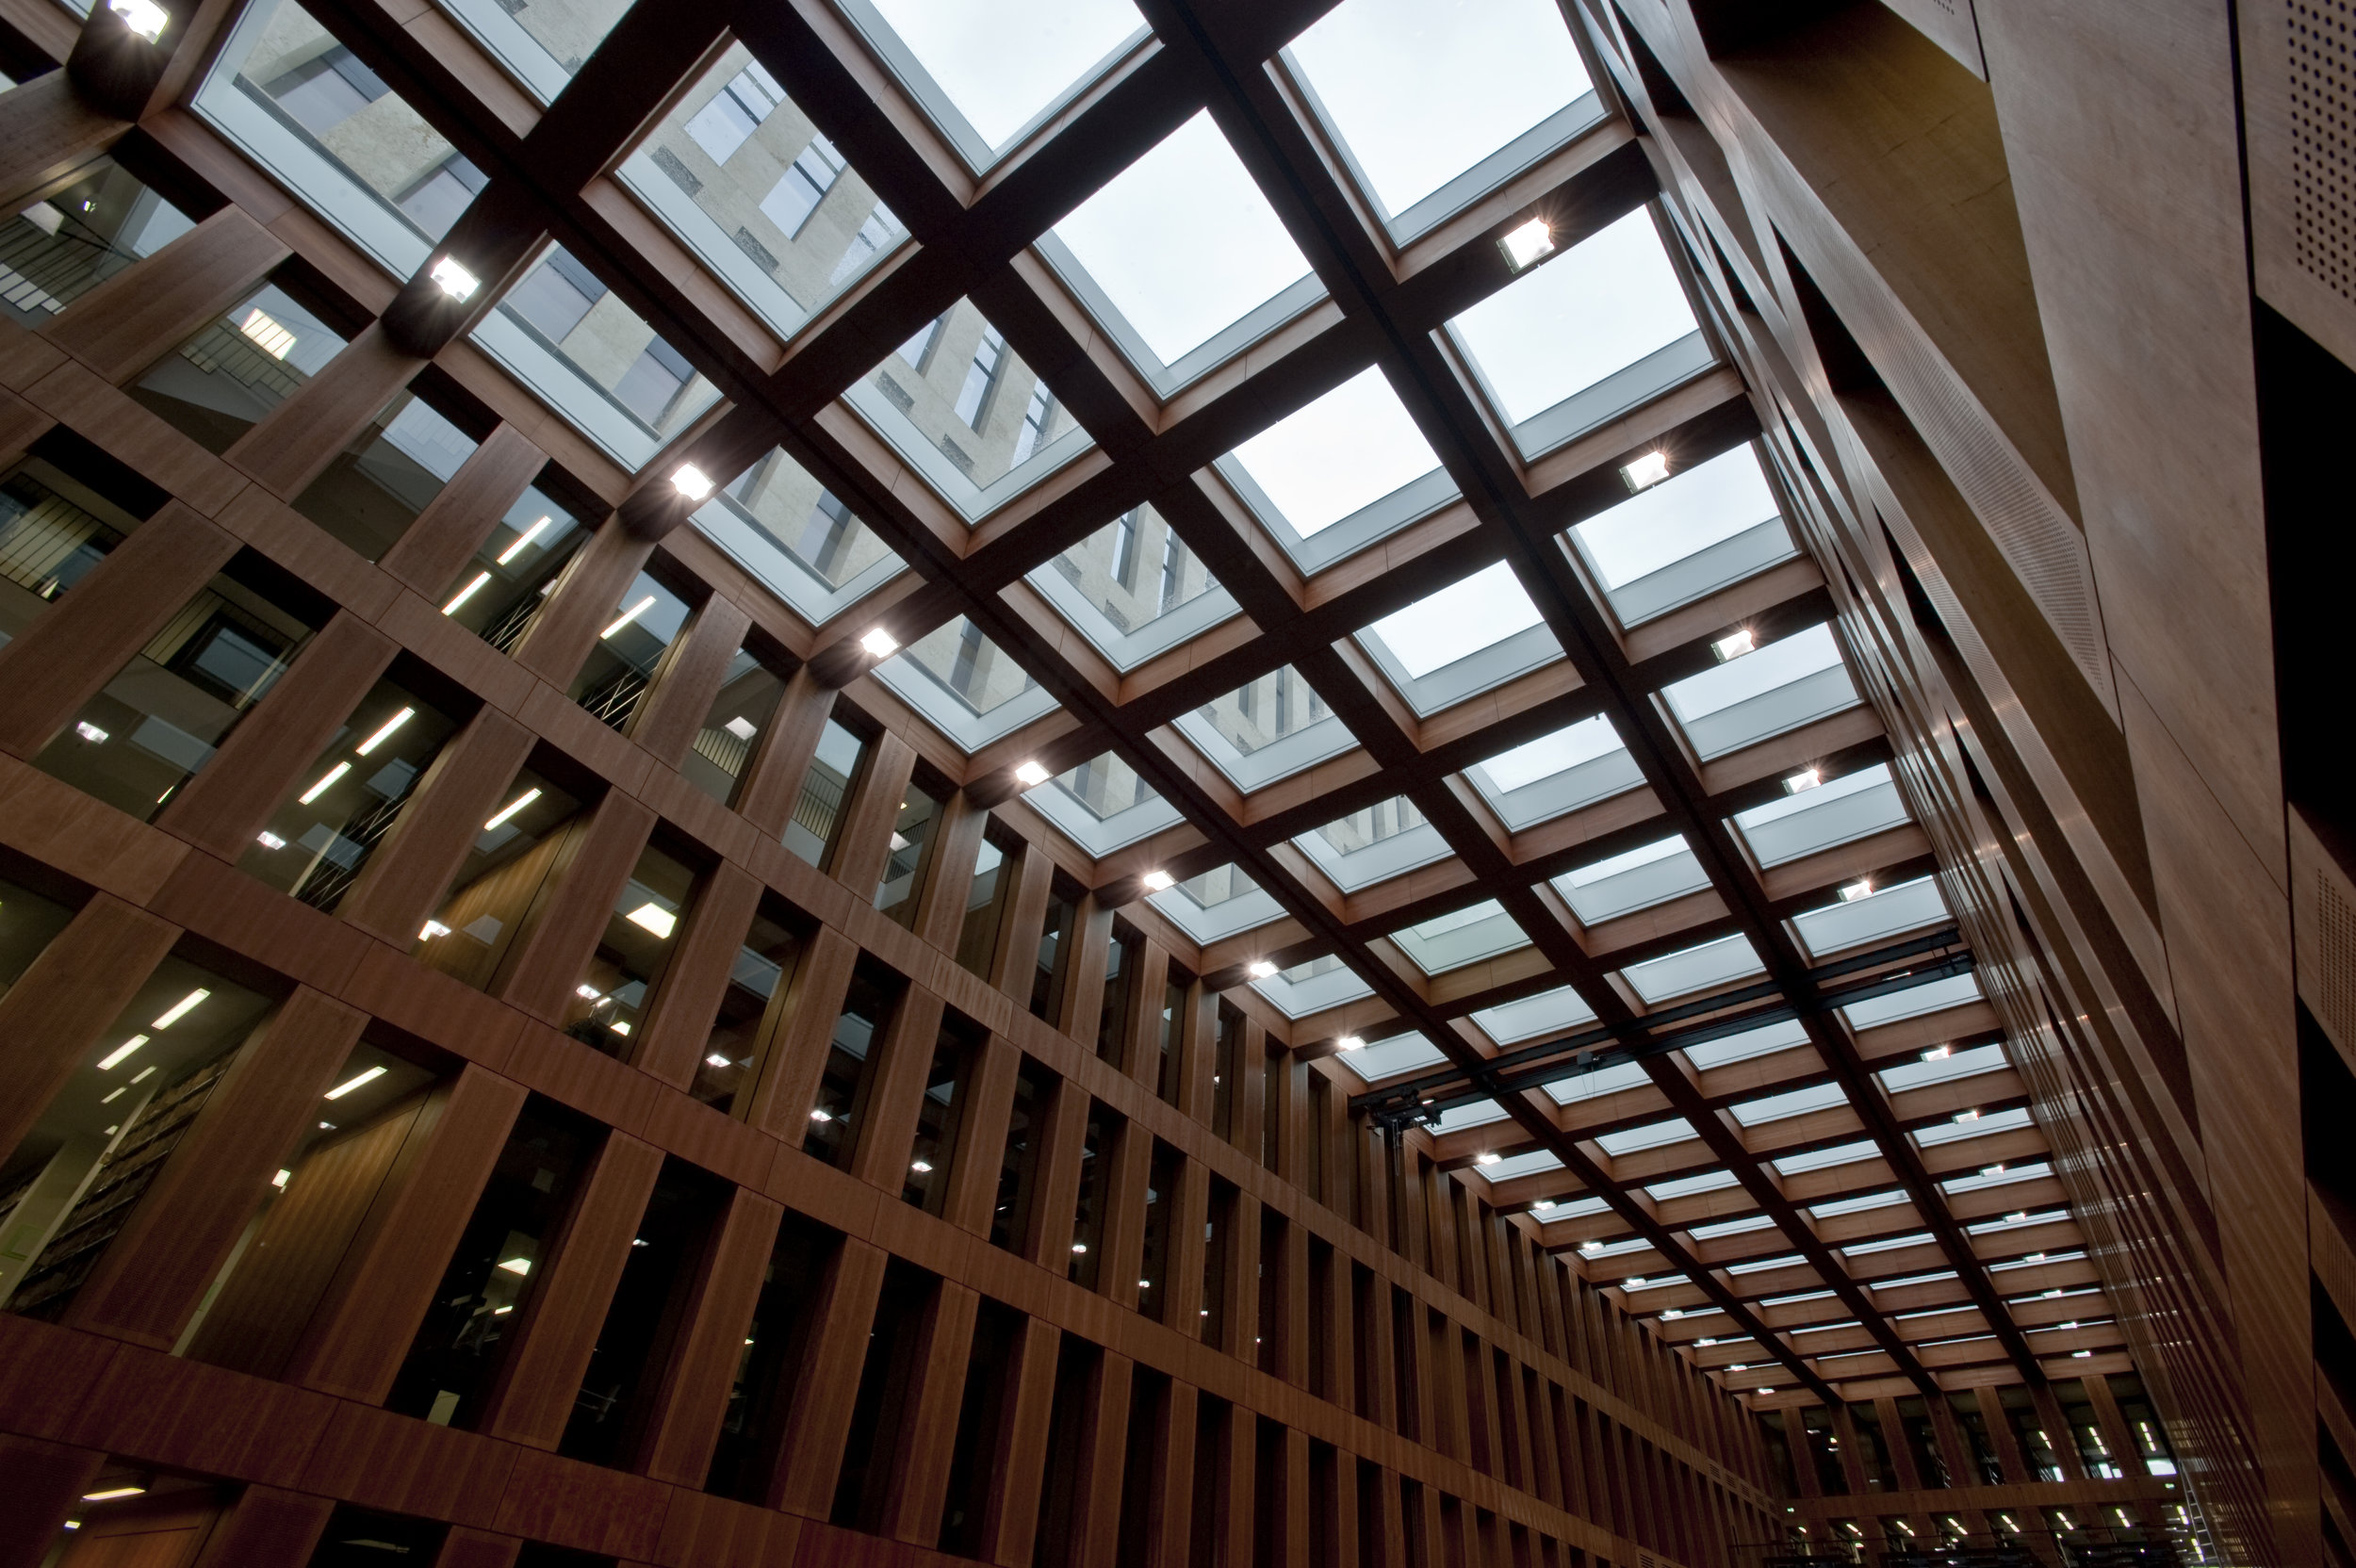 Glass roof systems provide daylight access to offices facing interior courtyard.